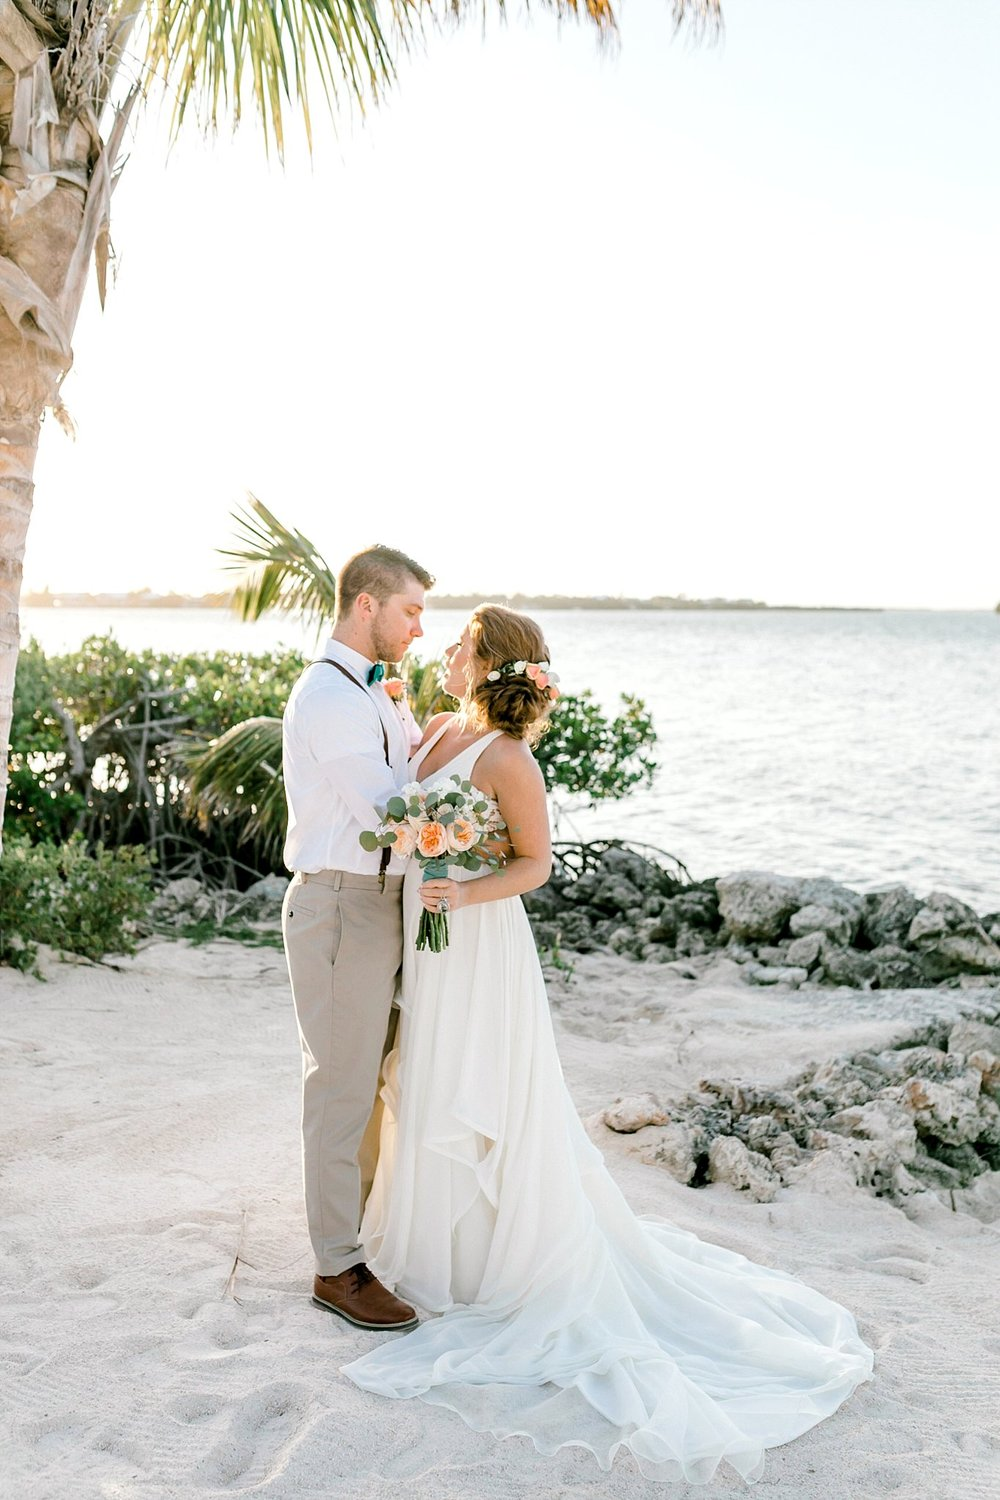 Magdalena Studios Key Largo Destination Wedding Photographer Tropical Island Florida Wedding Miami Vizcaya Gardens Romantic Destination Dreamy Film Wedding Photographer11.jpg